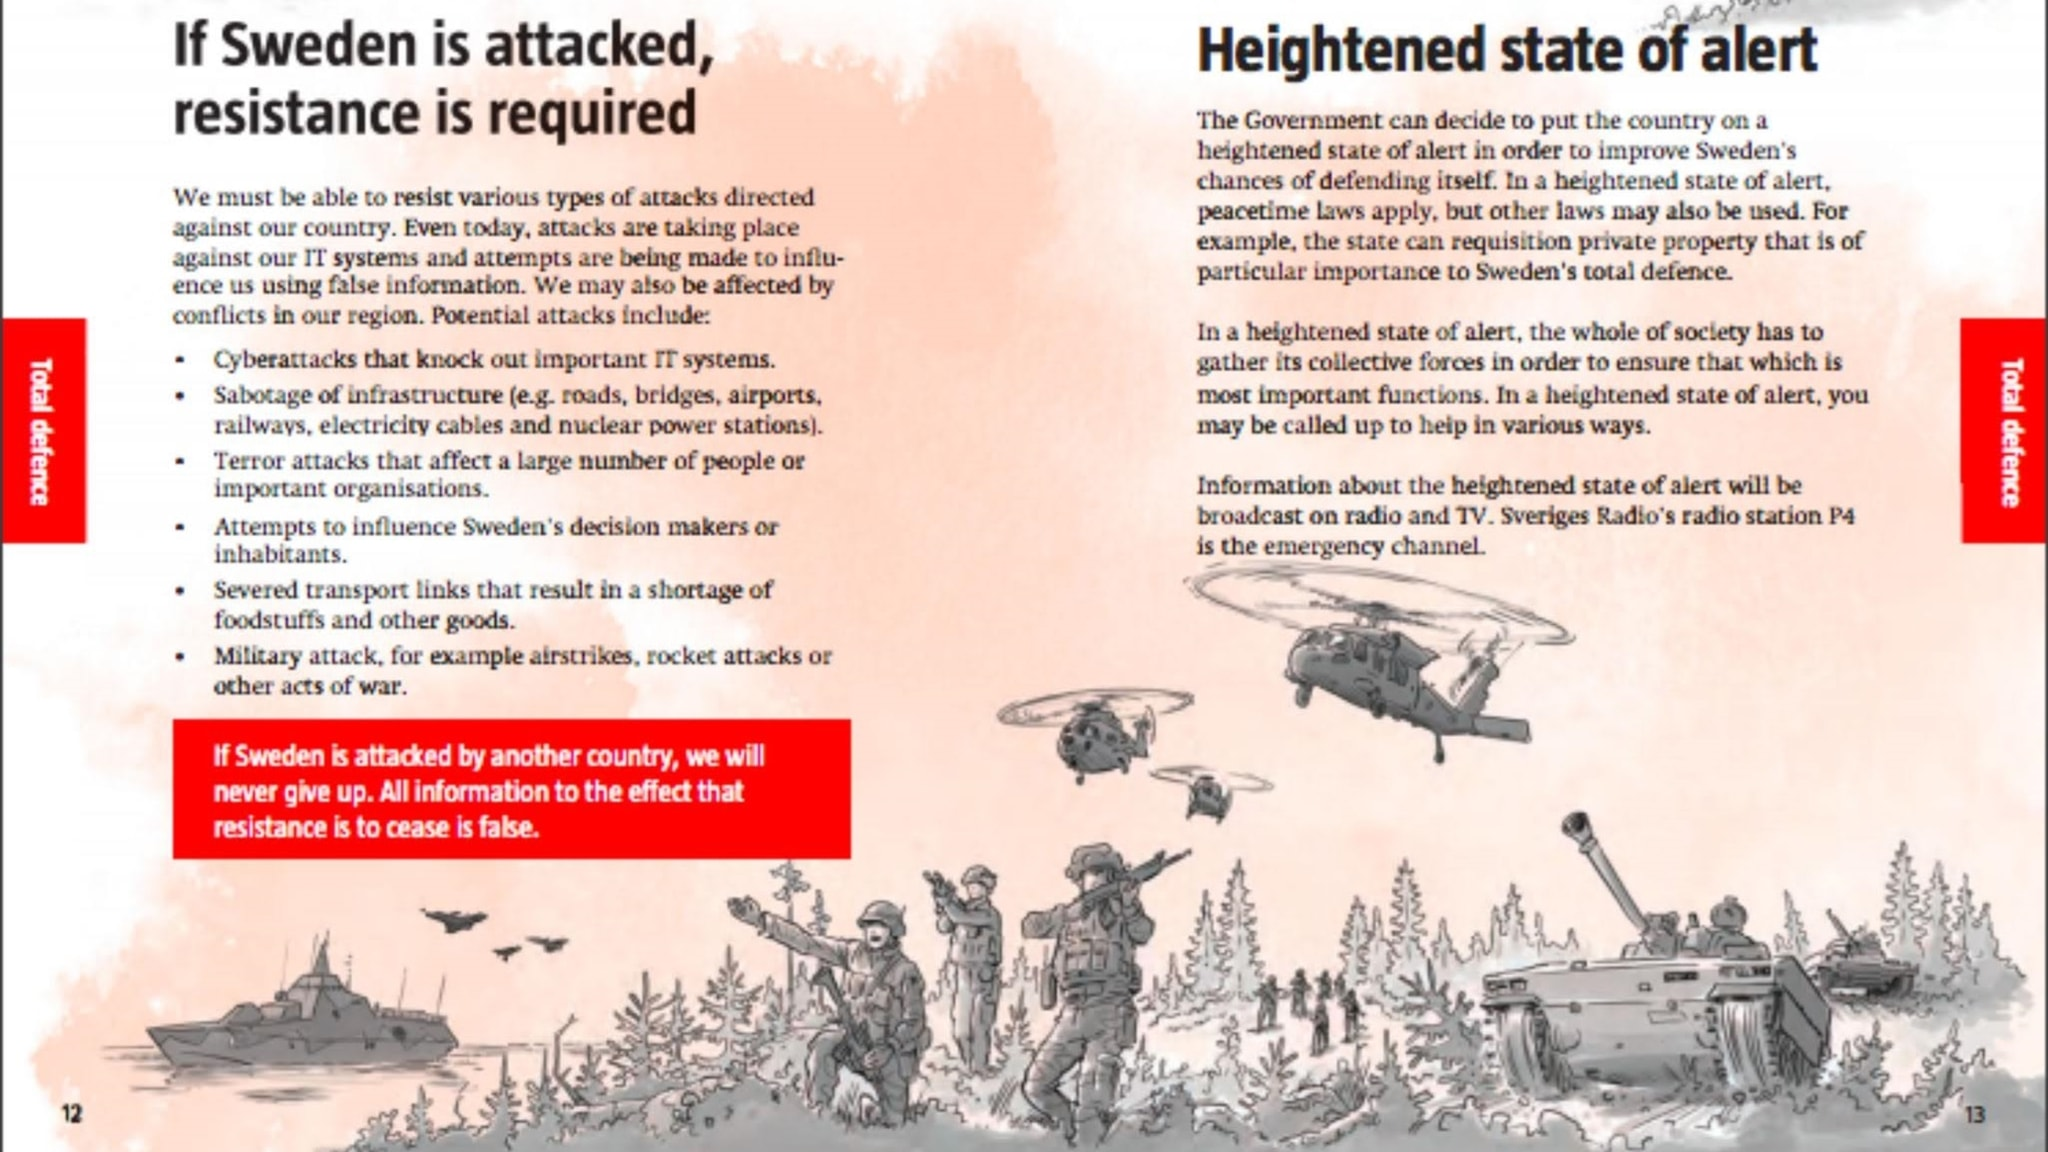 The leaflet shows tanks and helicopters on Swedish soil.